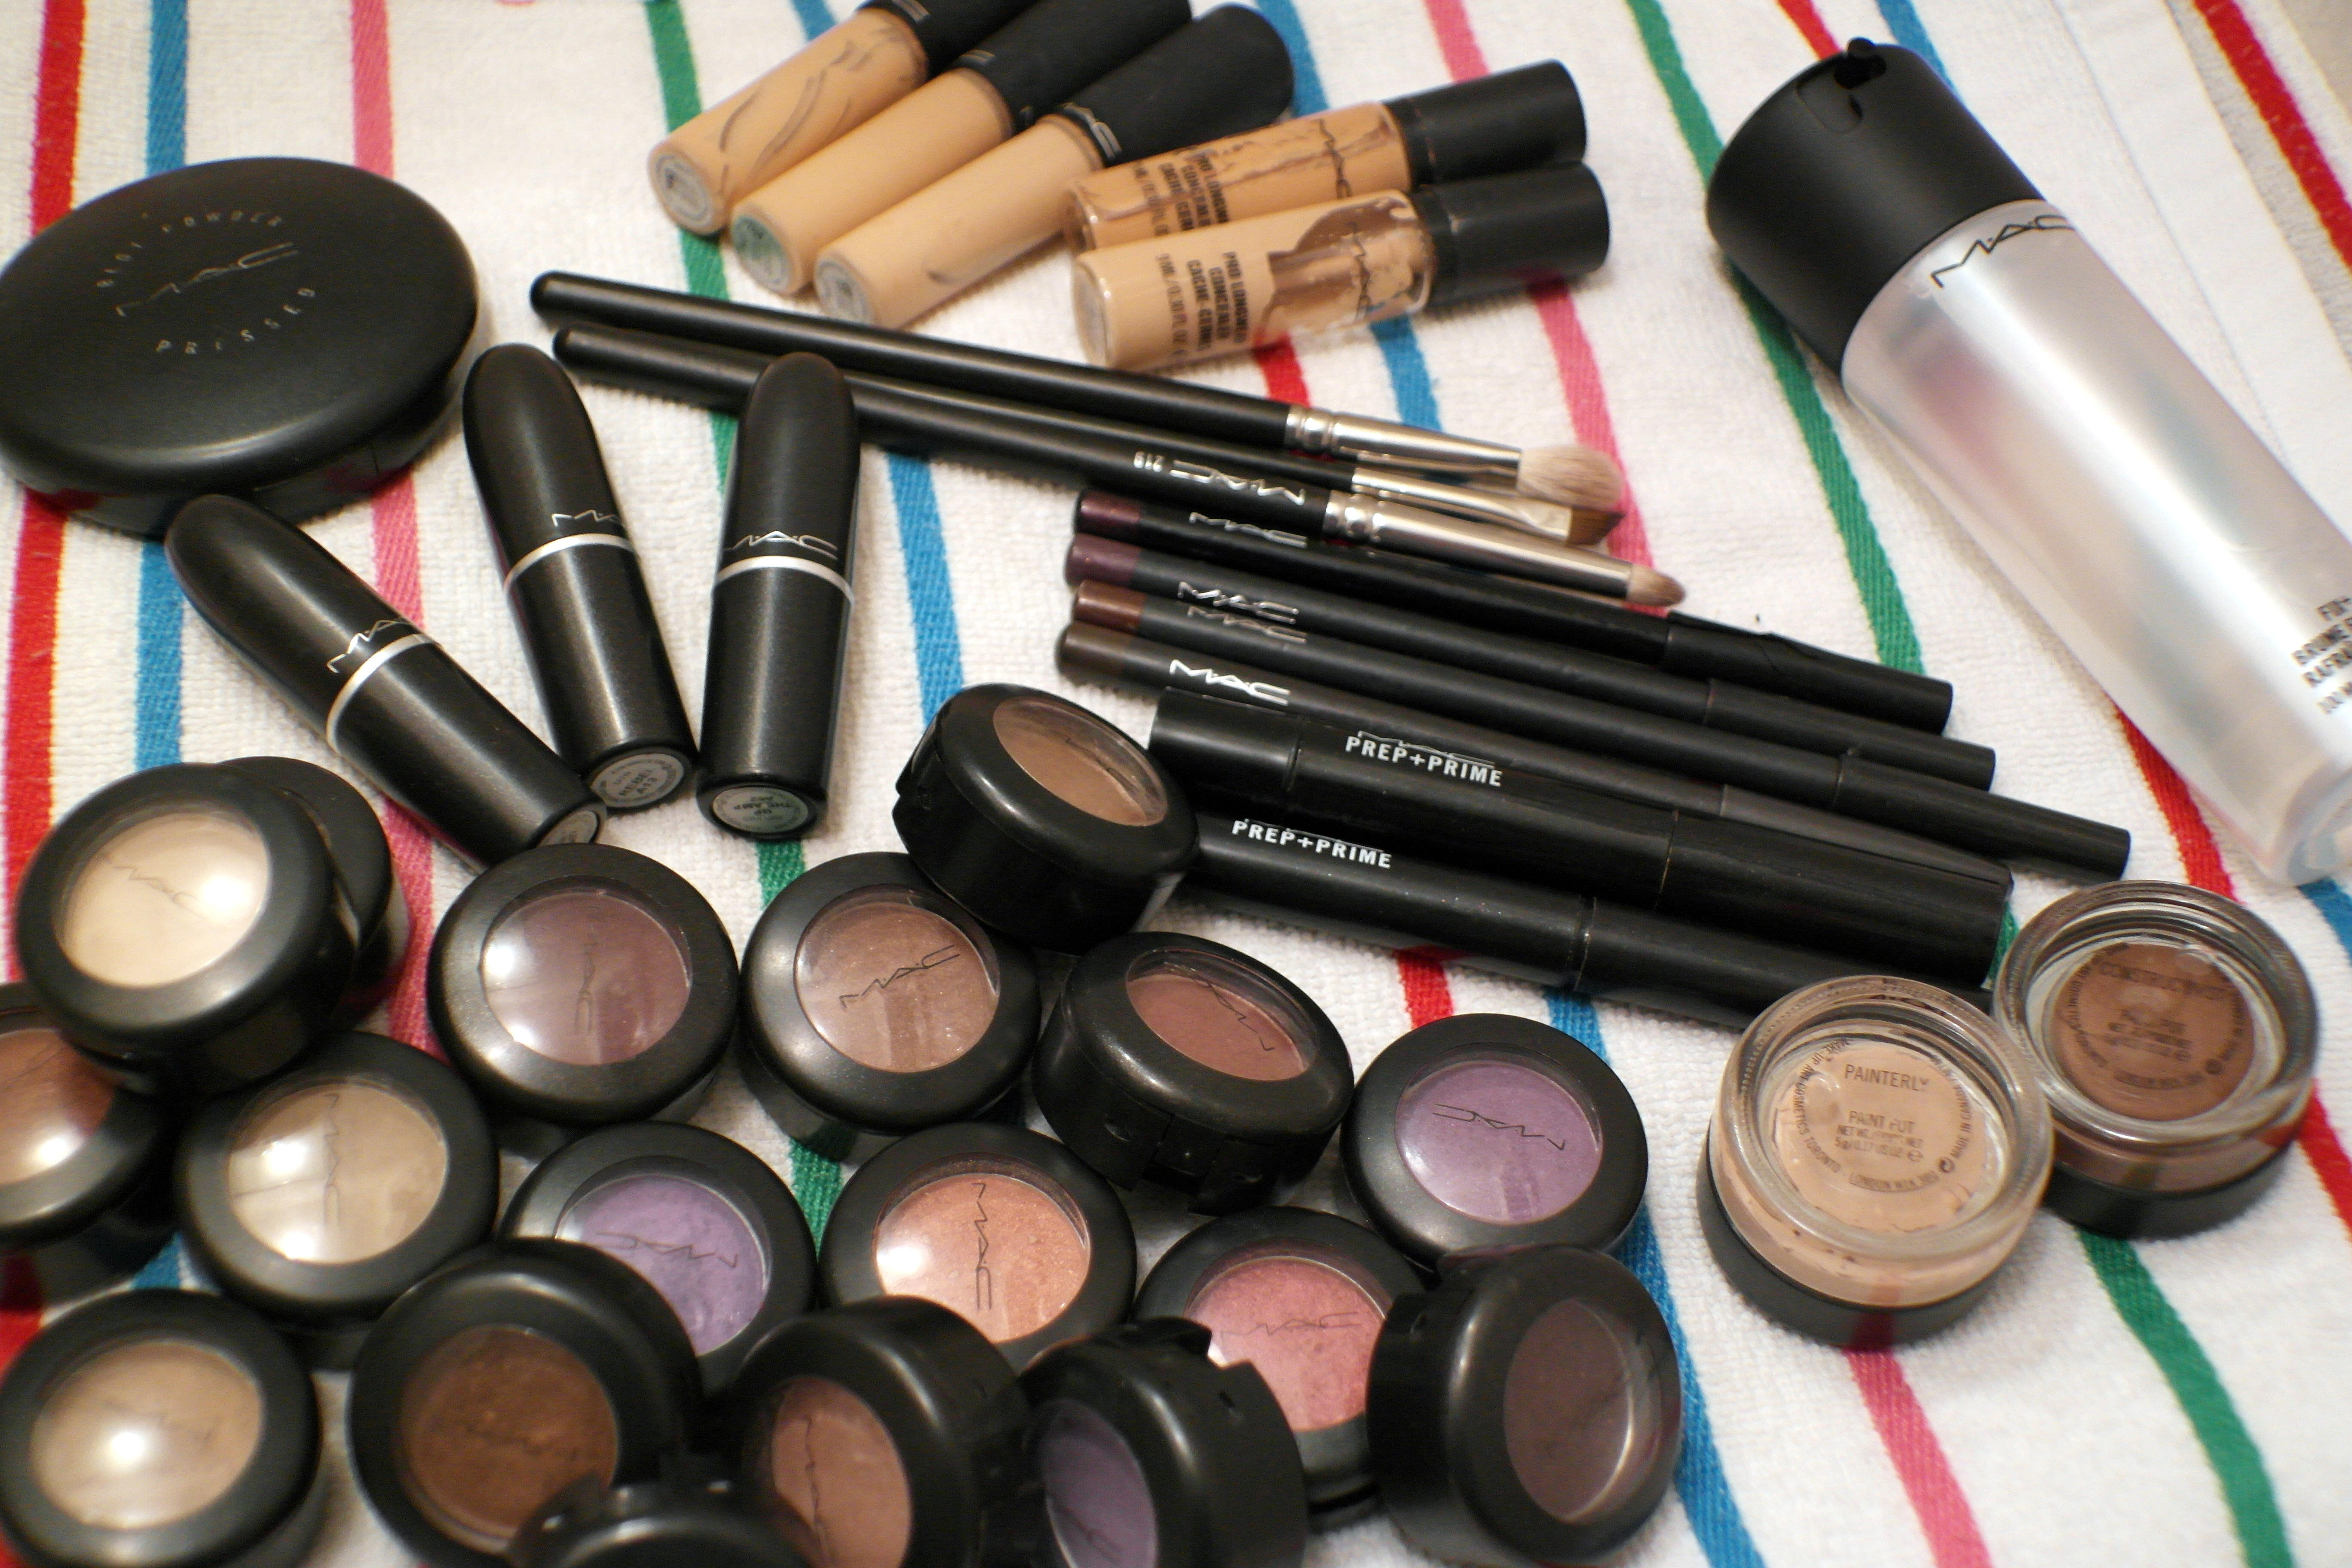 Seven Deadly Sins of Makeup - Beauty Tag - The Beauty Foodie